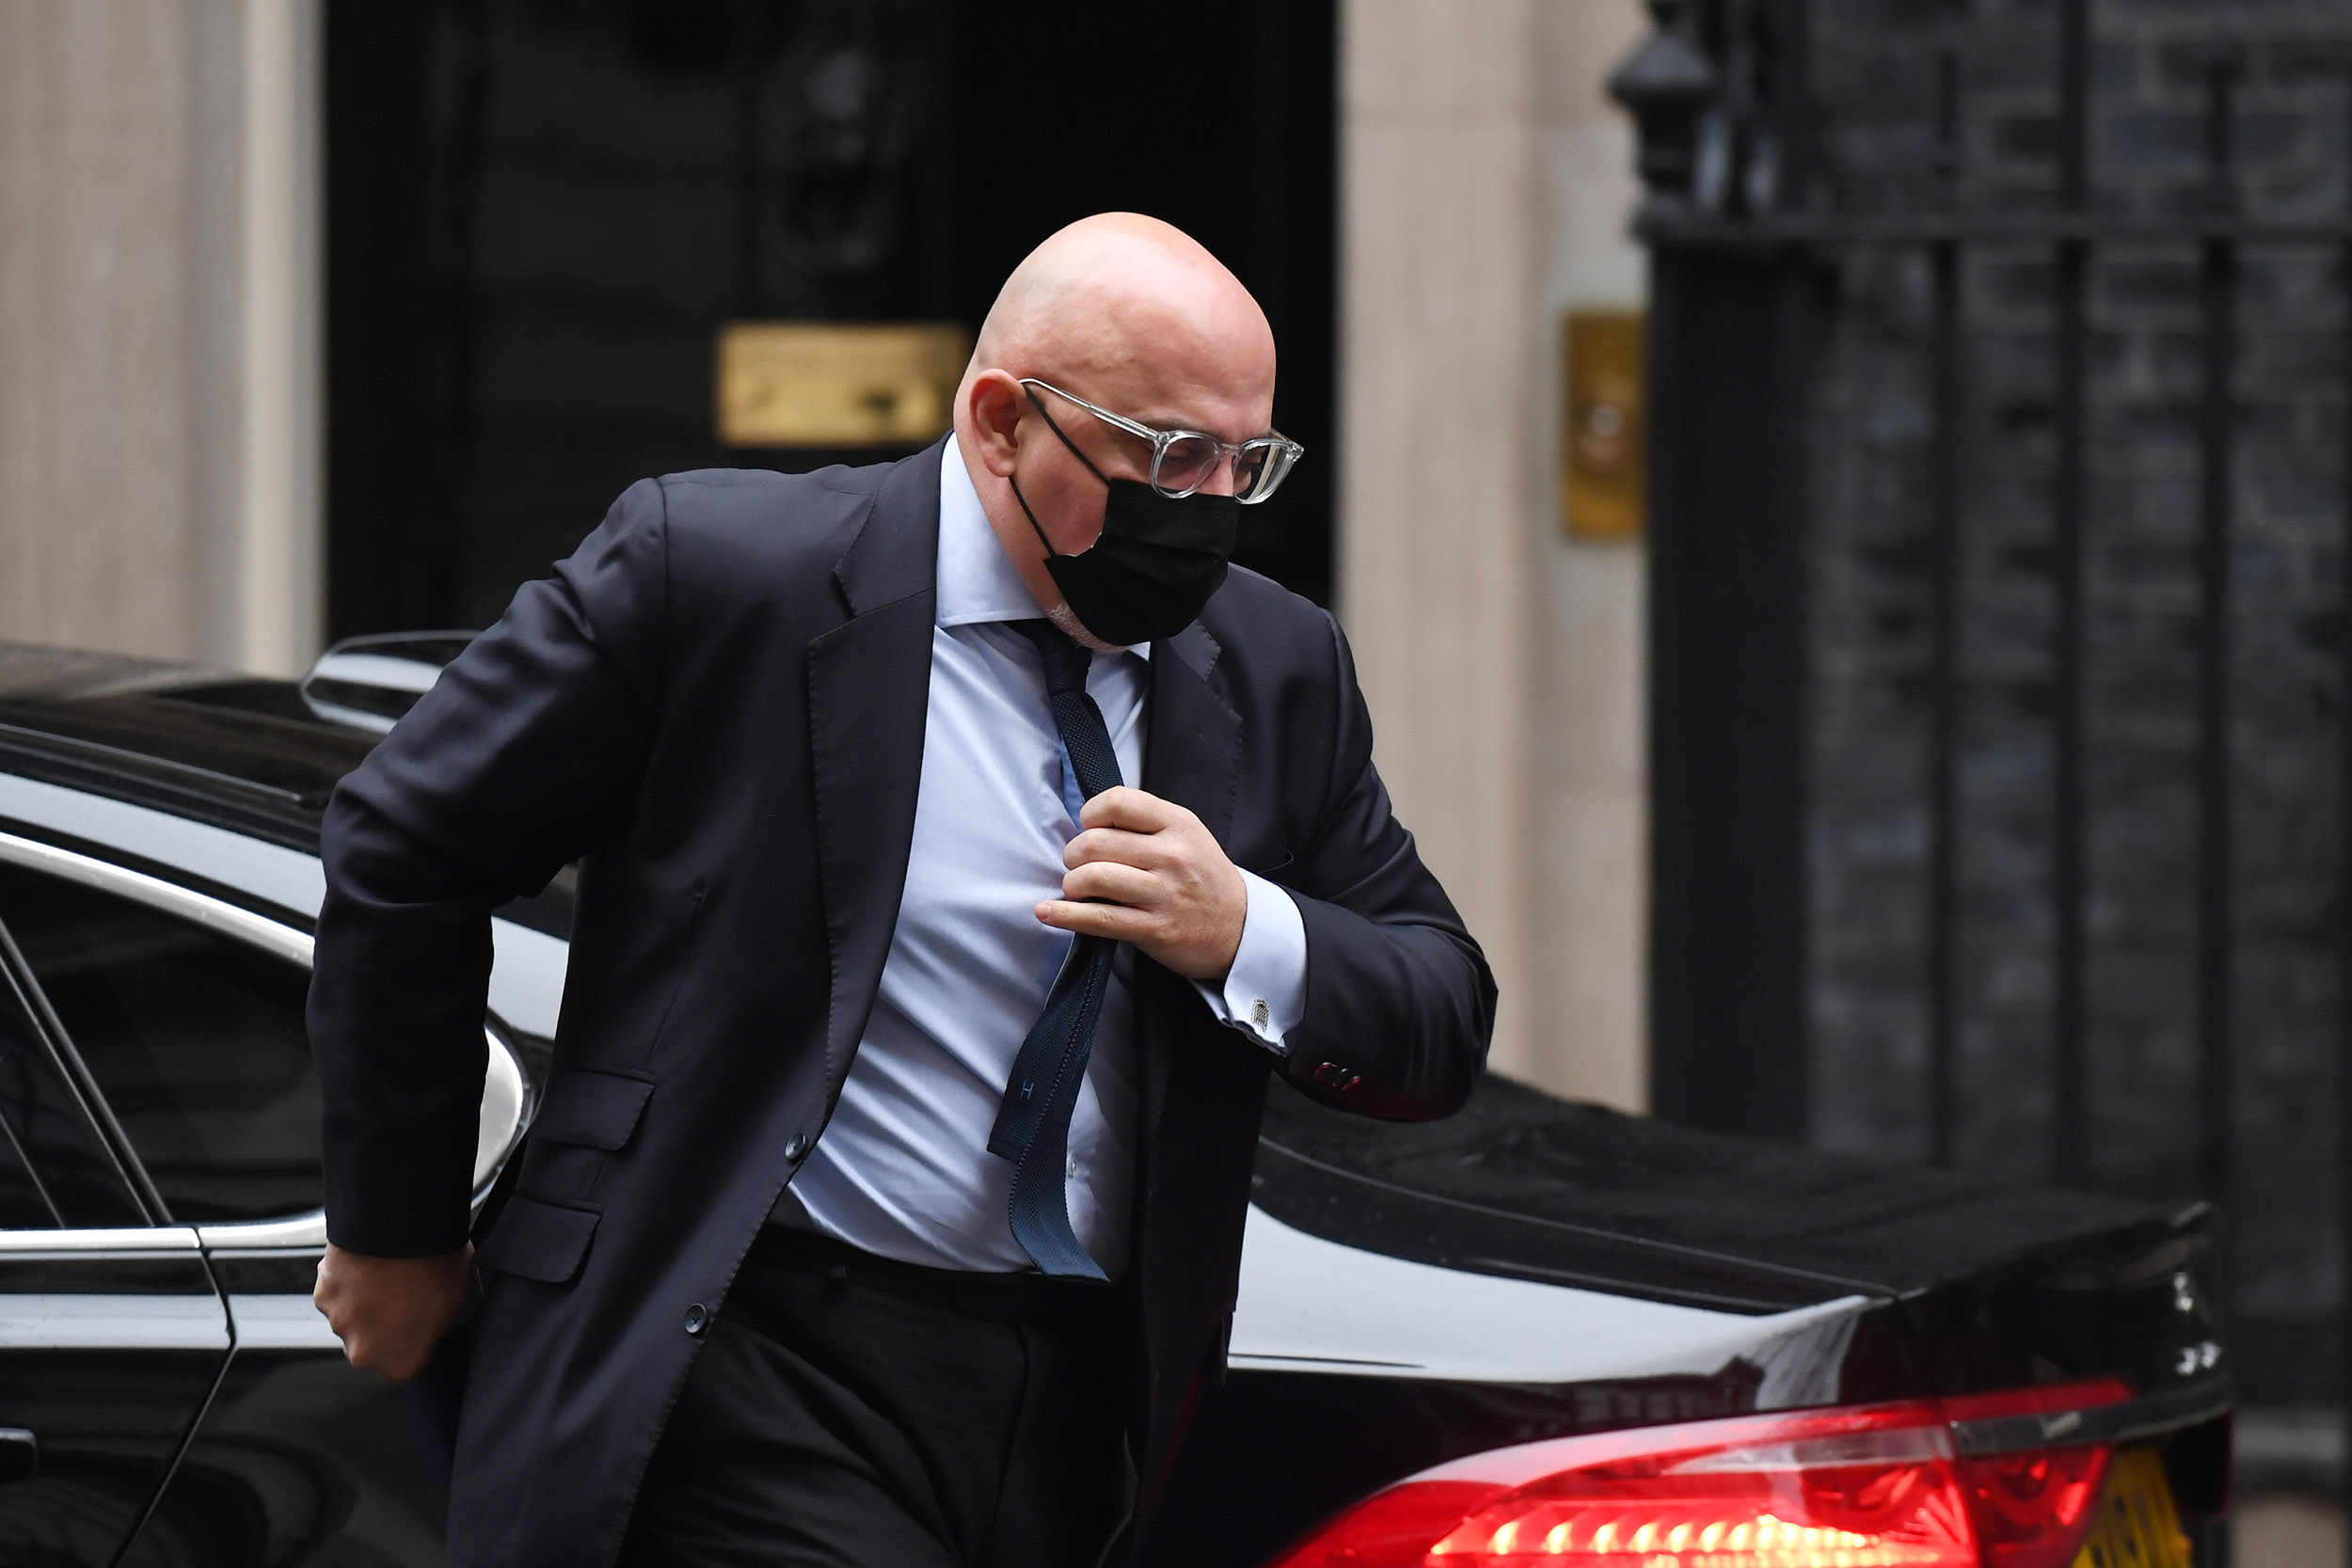 UK vaccine minister Nadhim Zahawi arrives at 10 Downing Street, London, on January 5, 2021.